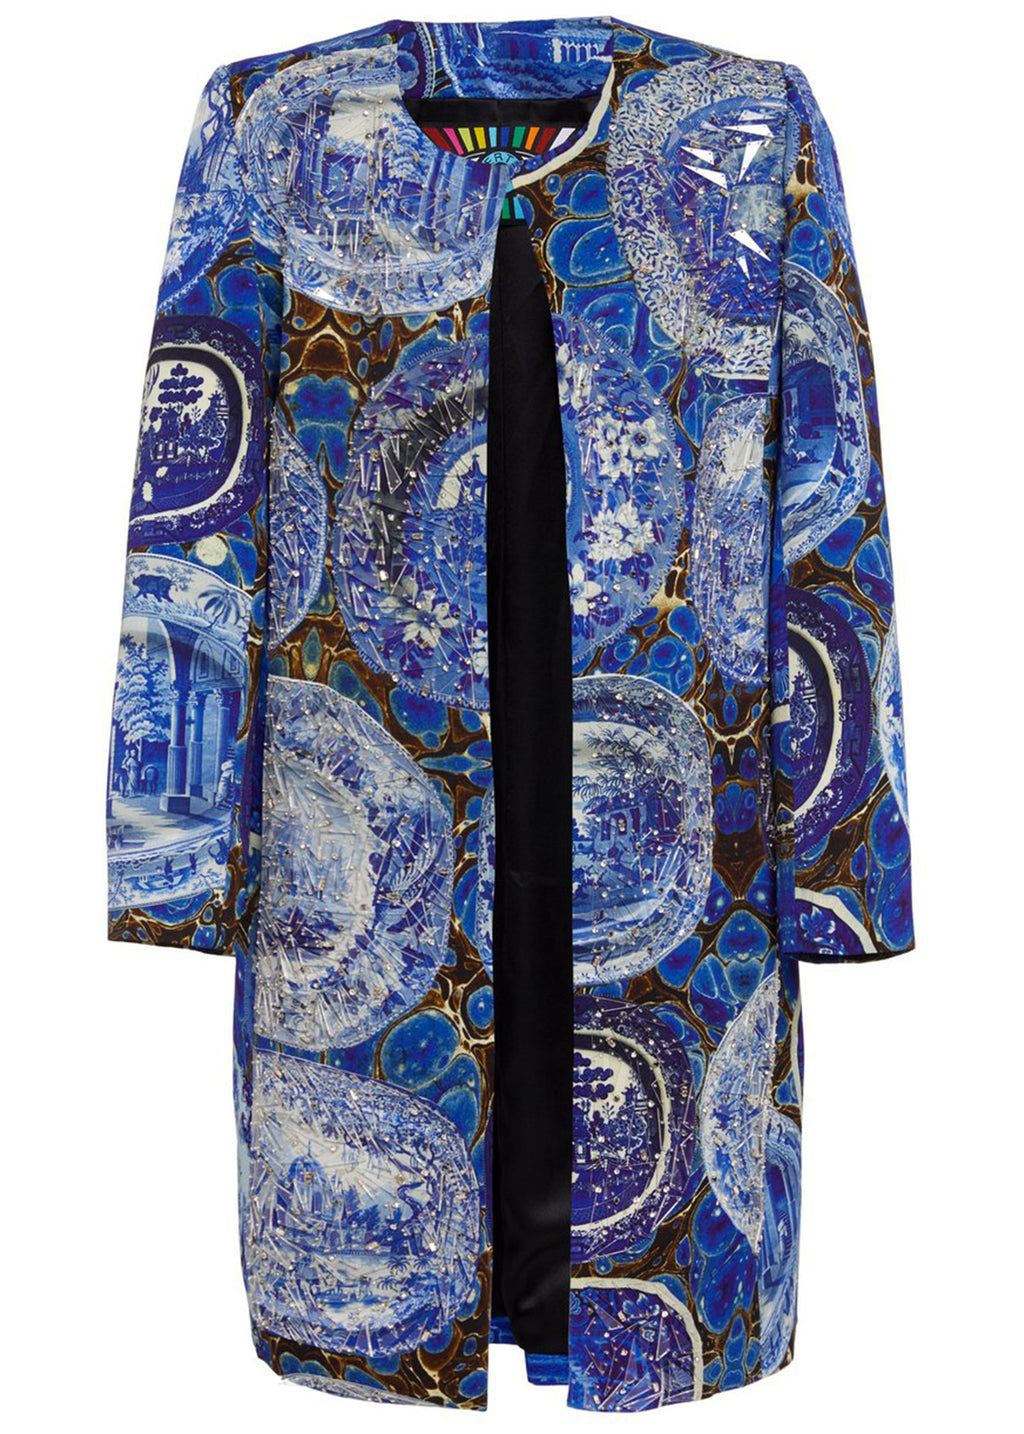 SHATTERED PLATES AND PLATTERS DUSTER COAT - Women's Jackets & Coats - Libertine